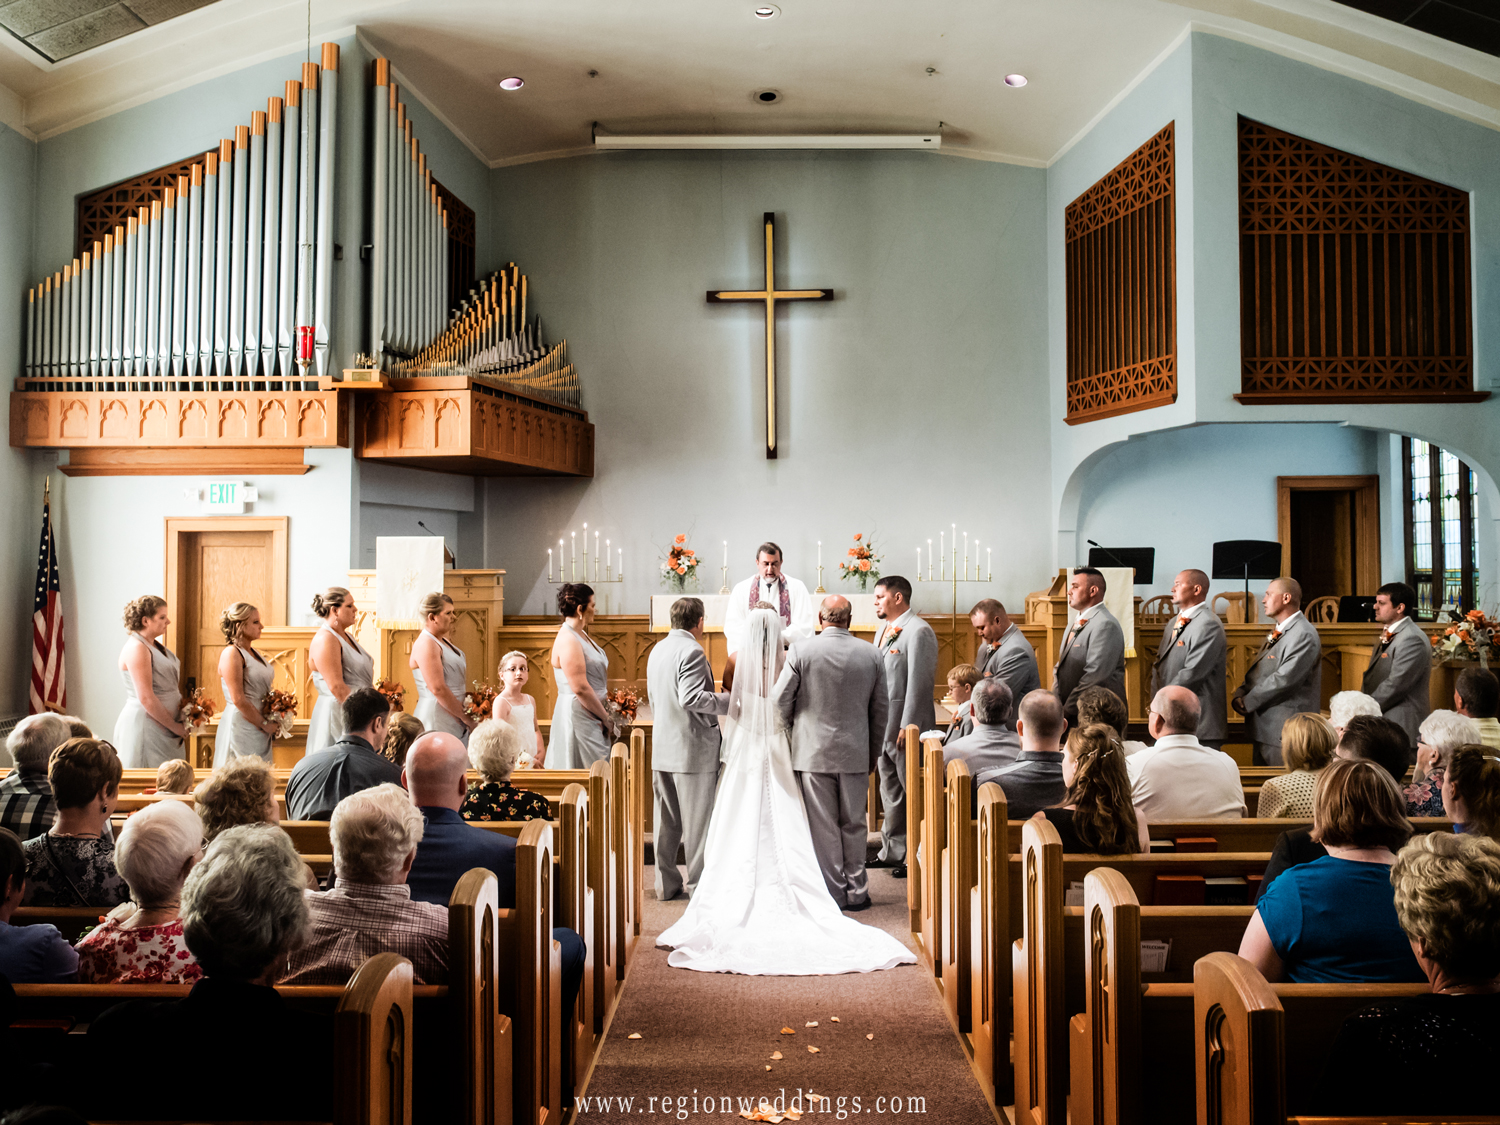 Wedding ceremony at Lowell Methodist Church.